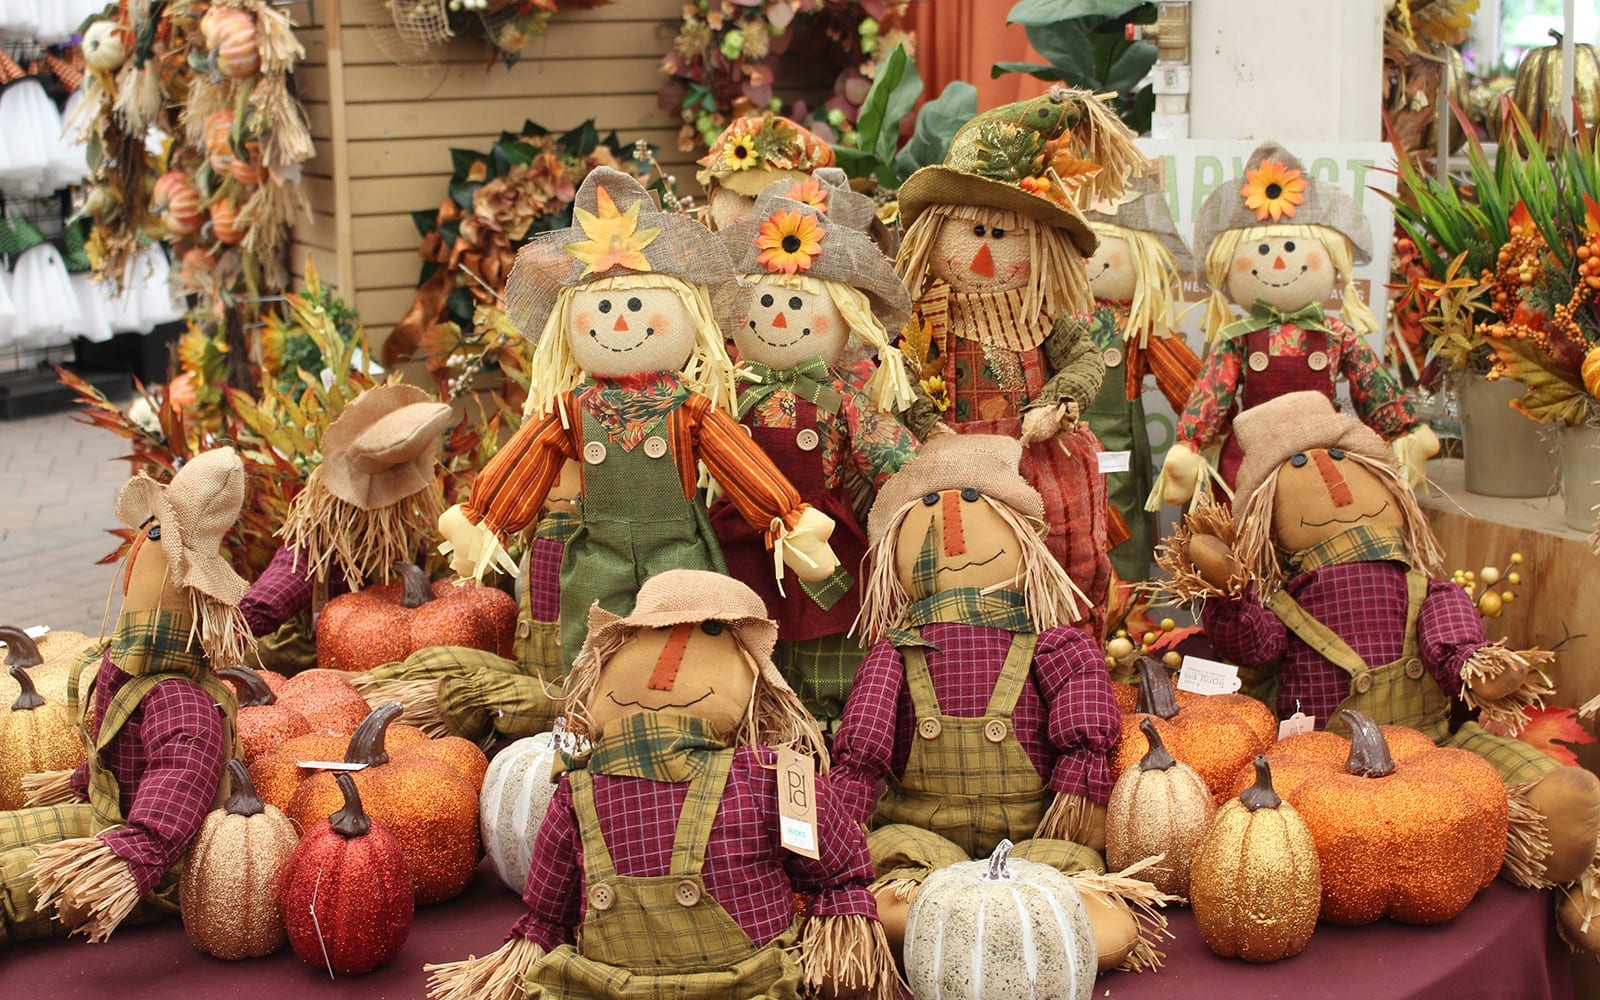 Assorted Fall Decor: Leaves, Scarecrows etc.